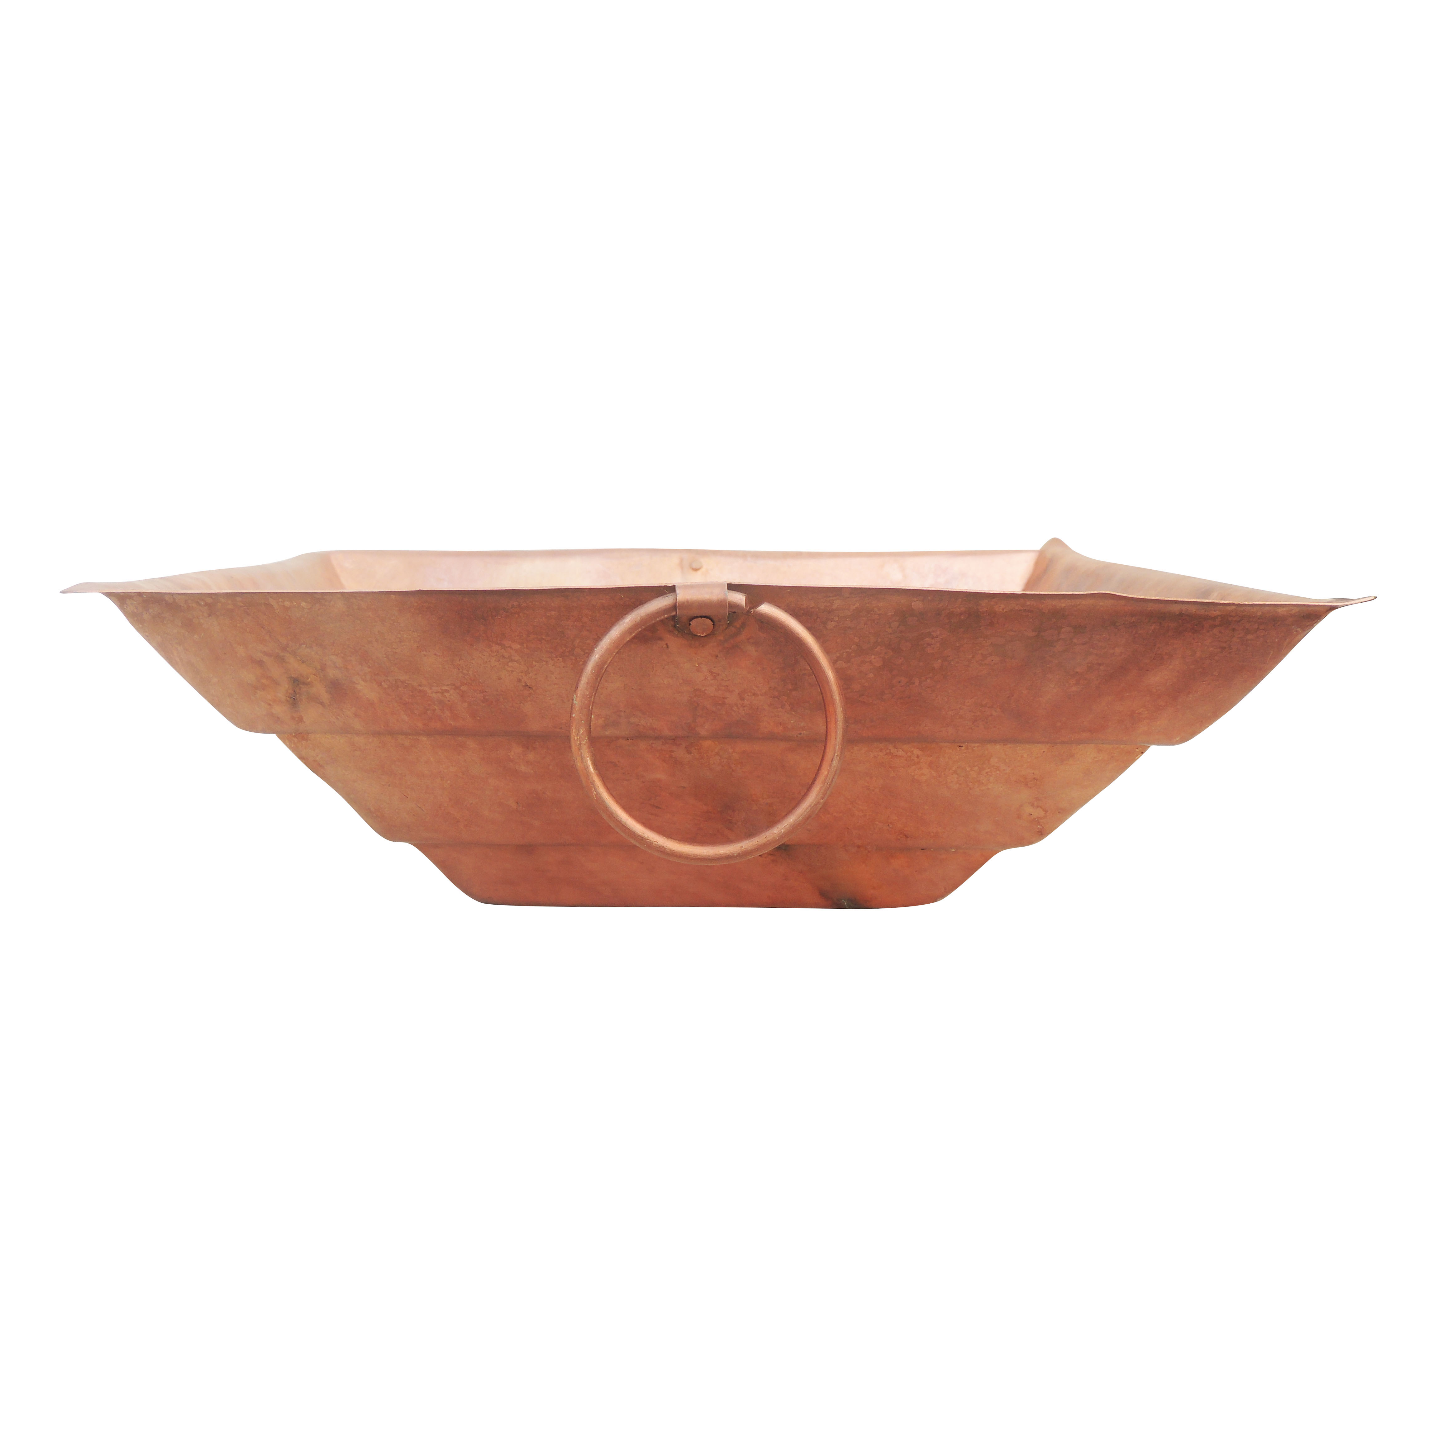 Copper Hawan Kund For Pooja Purpose No. 20 - 14 Inch (Z294 M)